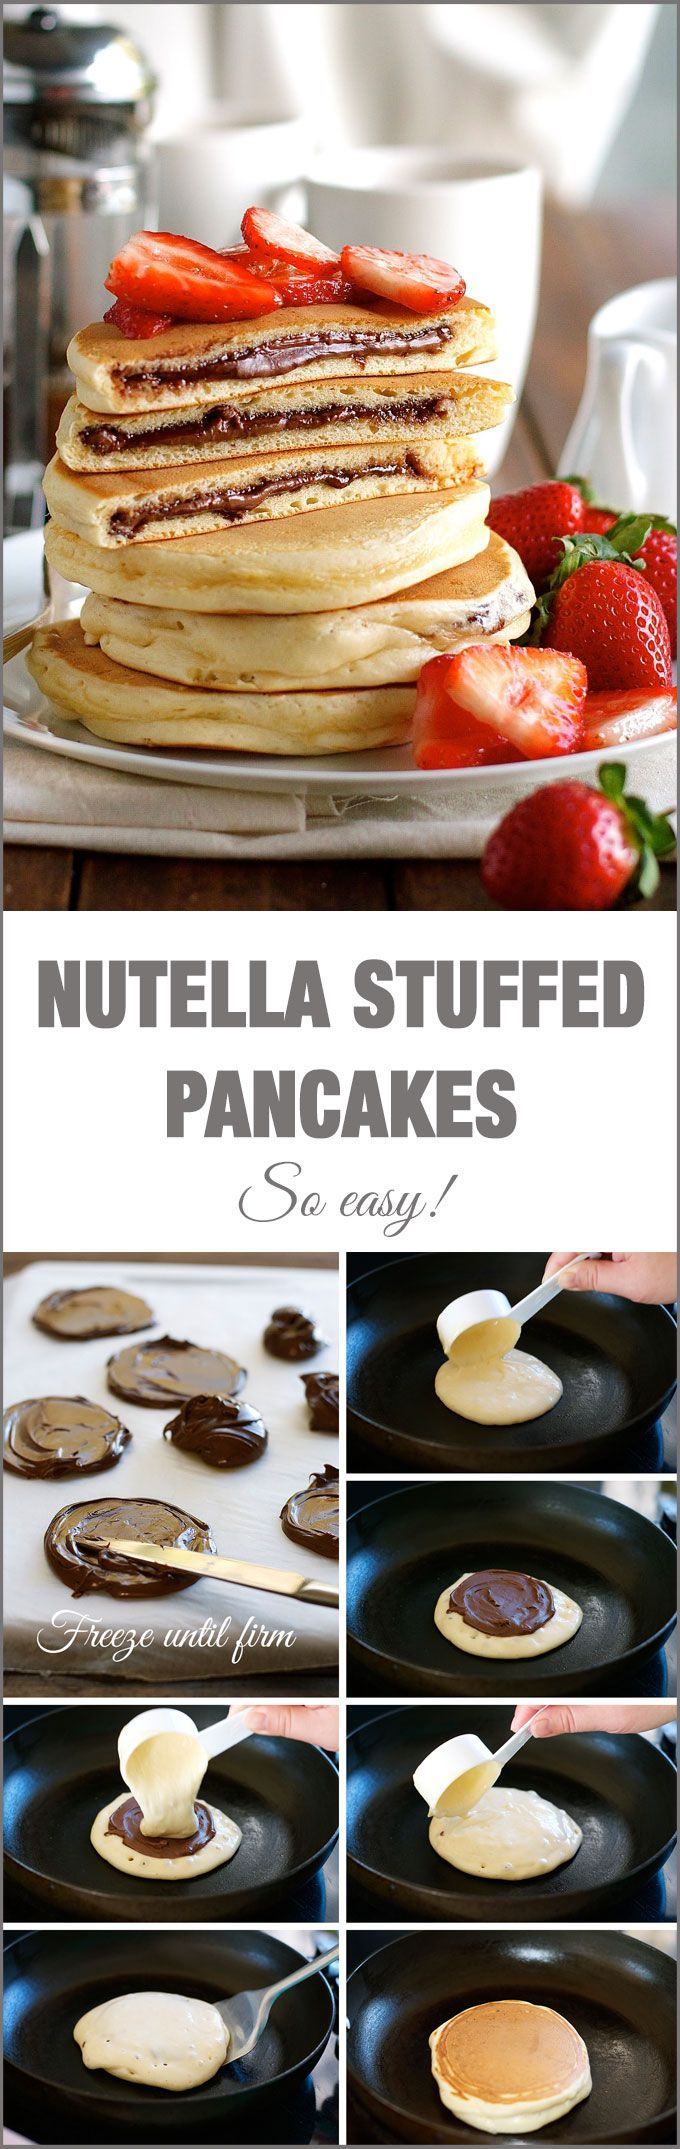 Nutella Stuffed Pancakes!